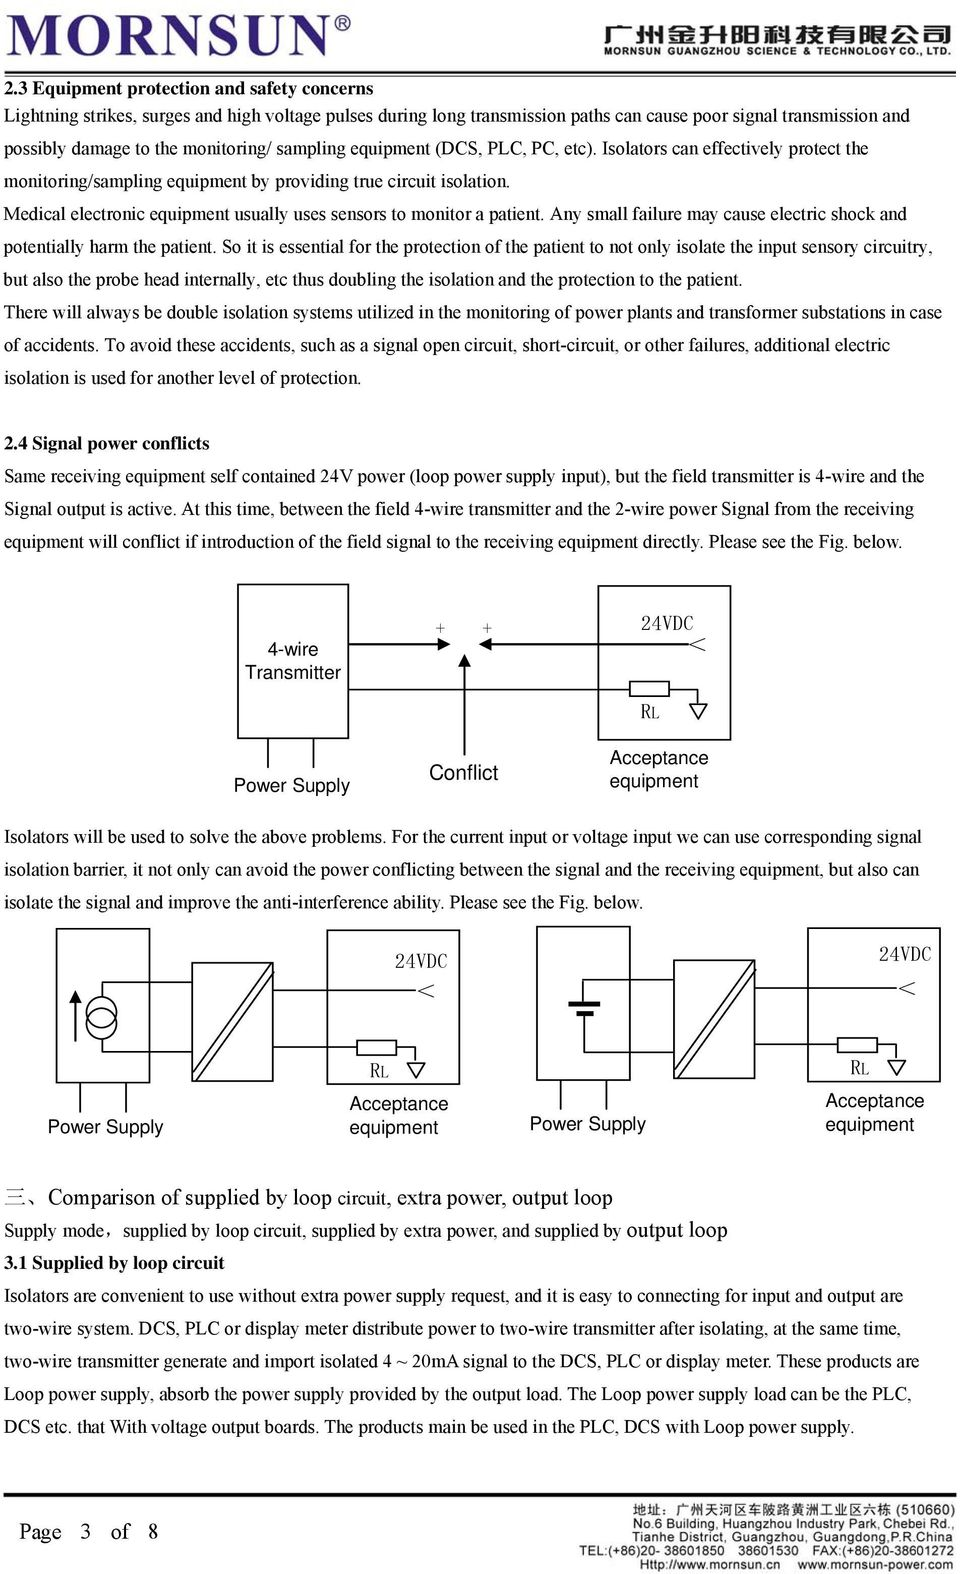 Application Notes Of Signal Isolators Pdf 20 Ma Current Loop Measuring Circuits Basics I Industrial Any Small Failure May Cause Electric Shock And Potentially Harm The Patient